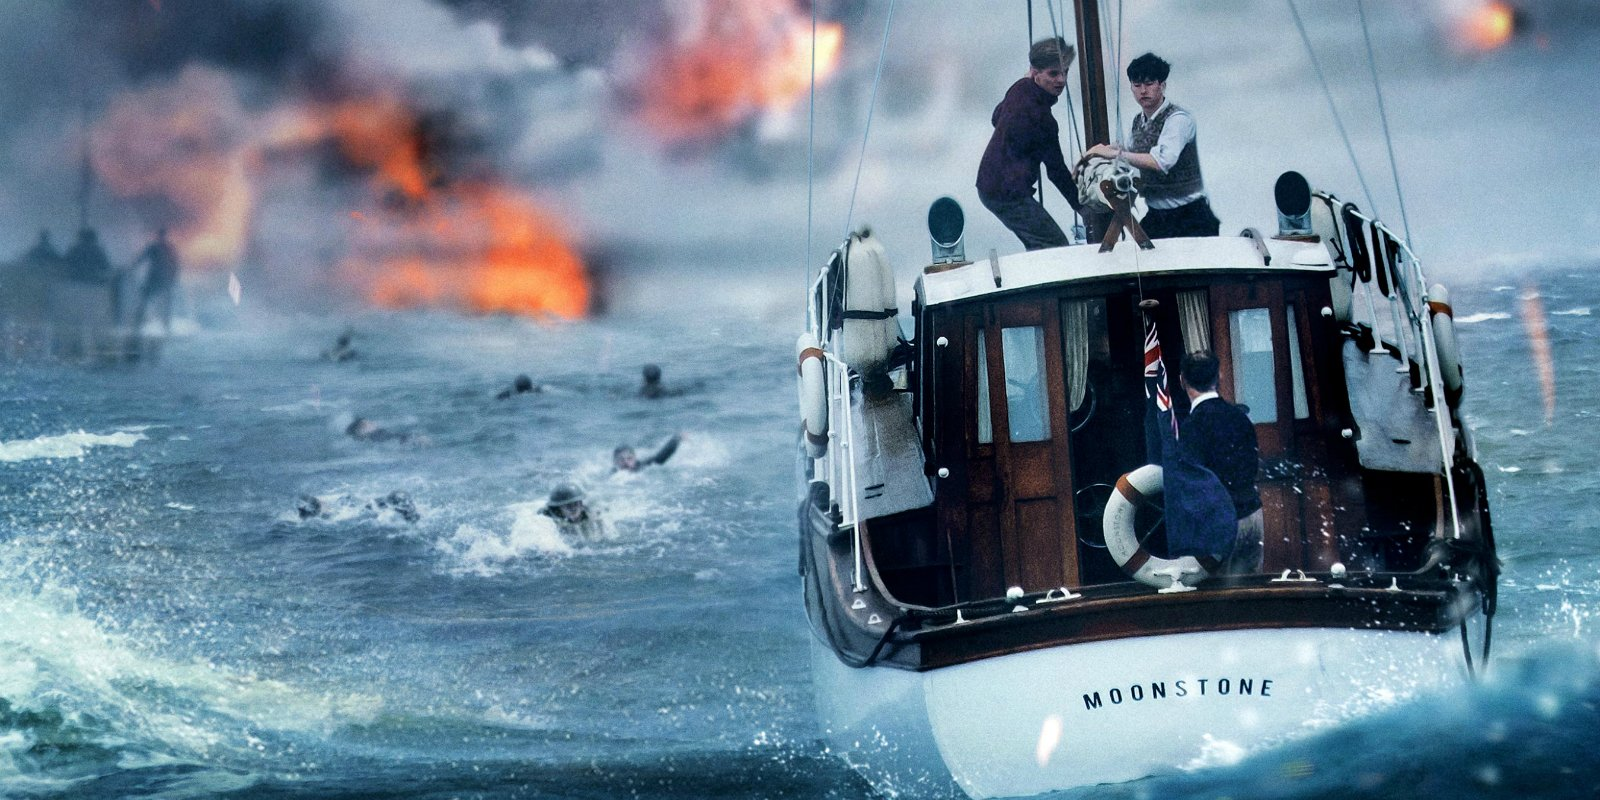 http://revista22.ro/files/news/manset/default/foto-dunkirk-2.jpg